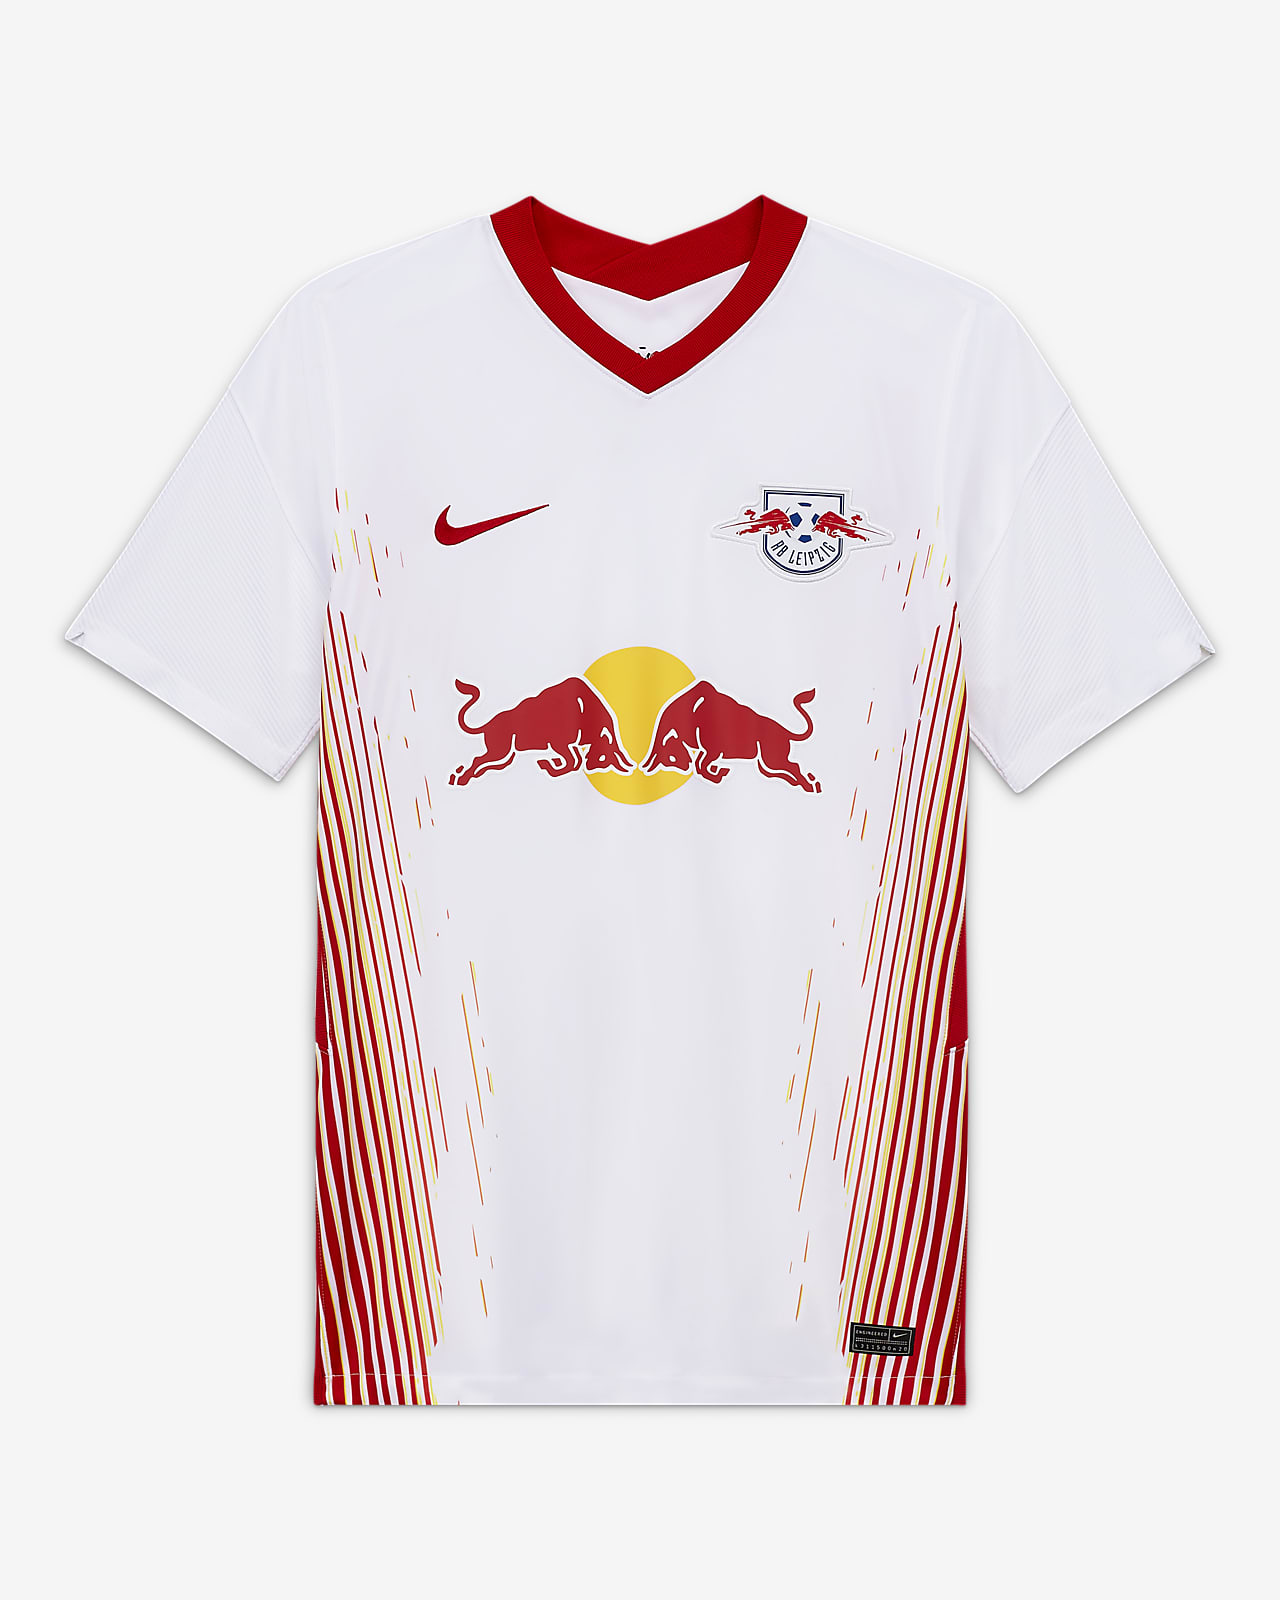 RB Leipzig 2020/21 Stadium Home Men's Football Shirt